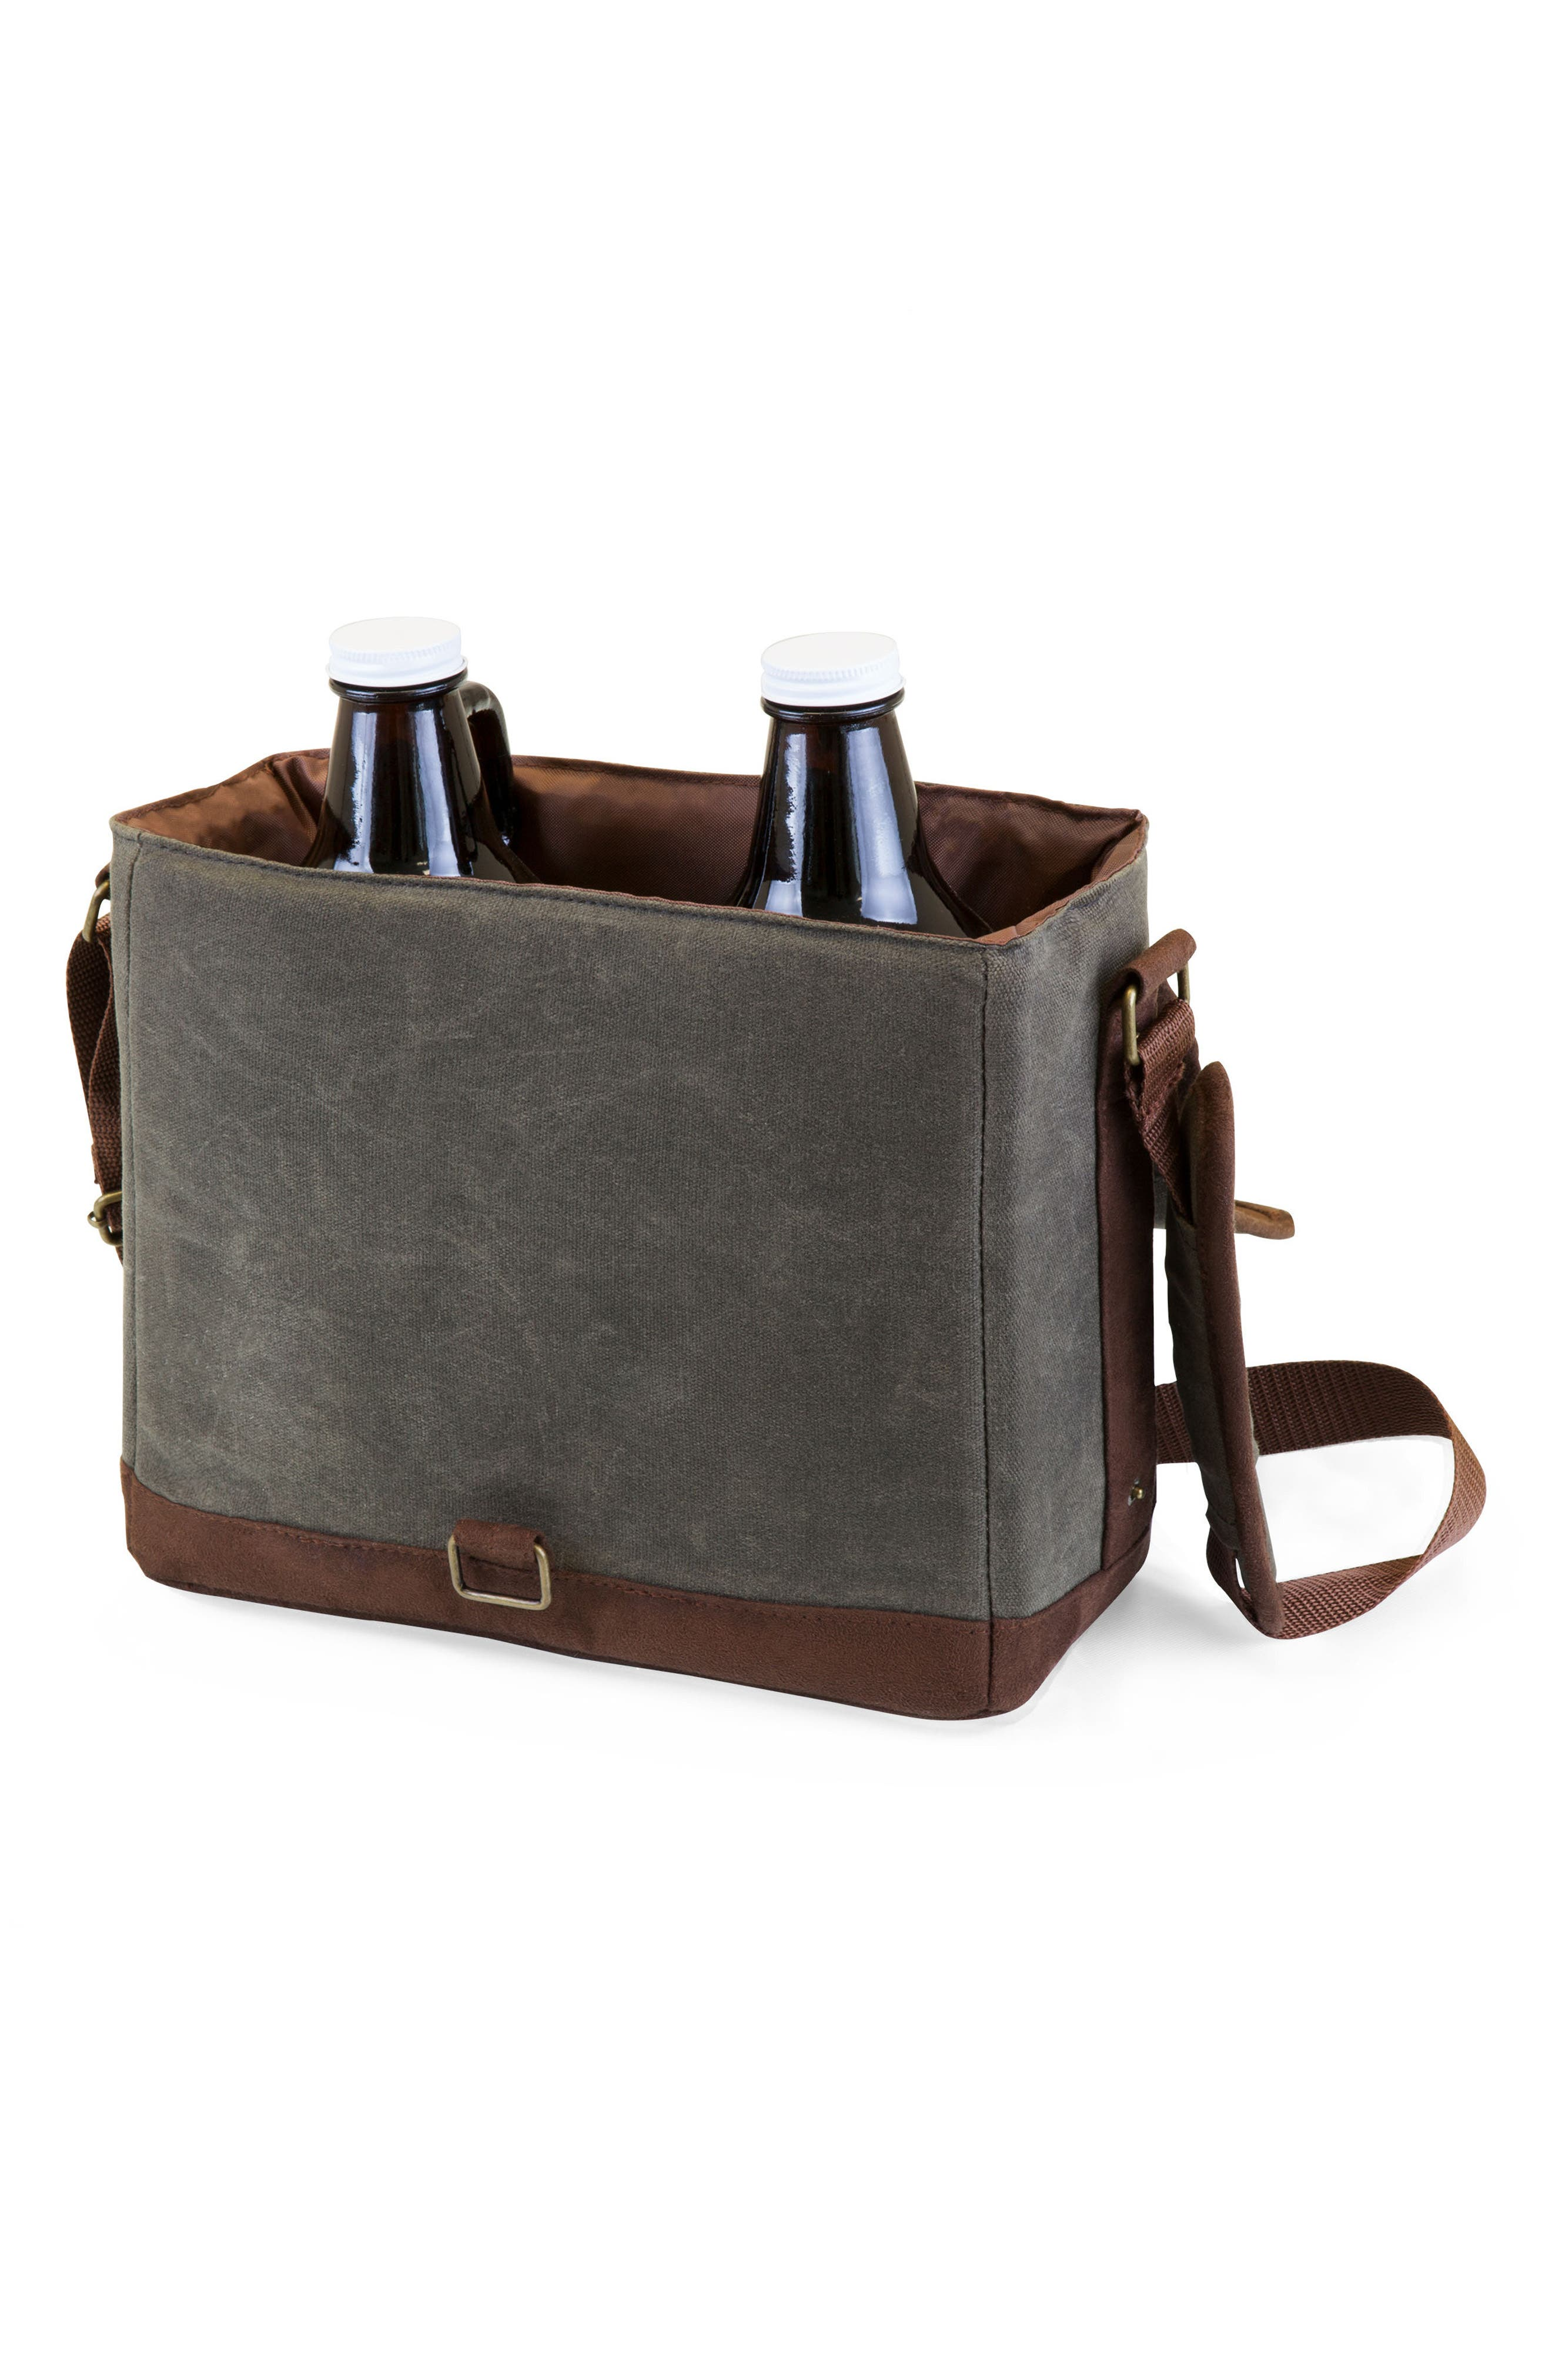 Insulated Double Growler Tote & Growlers,                             Alternate thumbnail 2, color,                             301